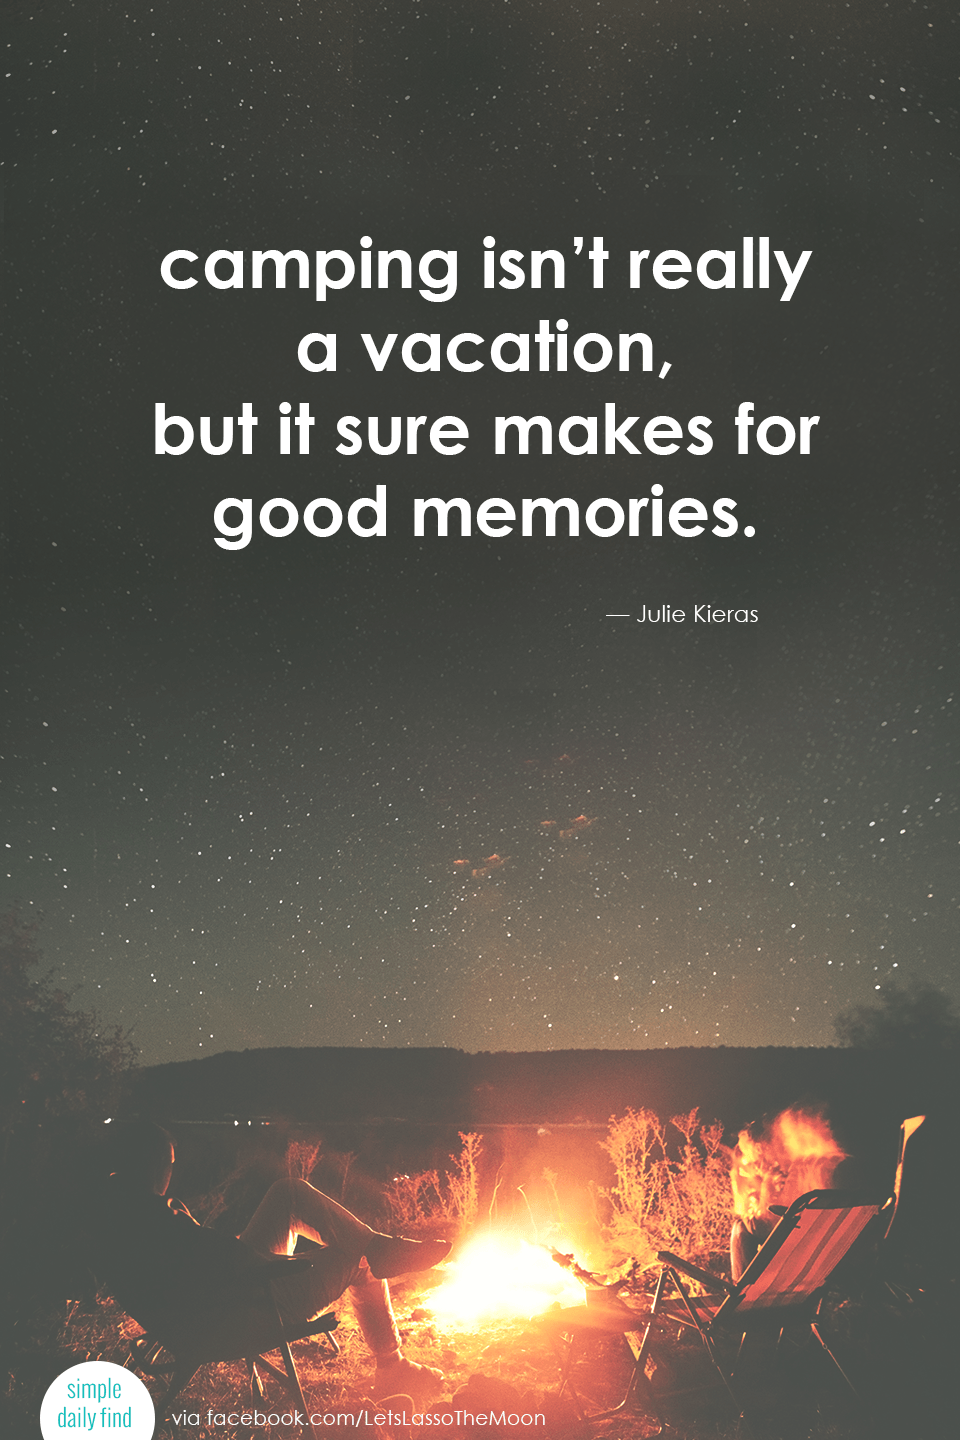 21 Family Camping Tips That Will Ensure An Awesome Time #campingpictures